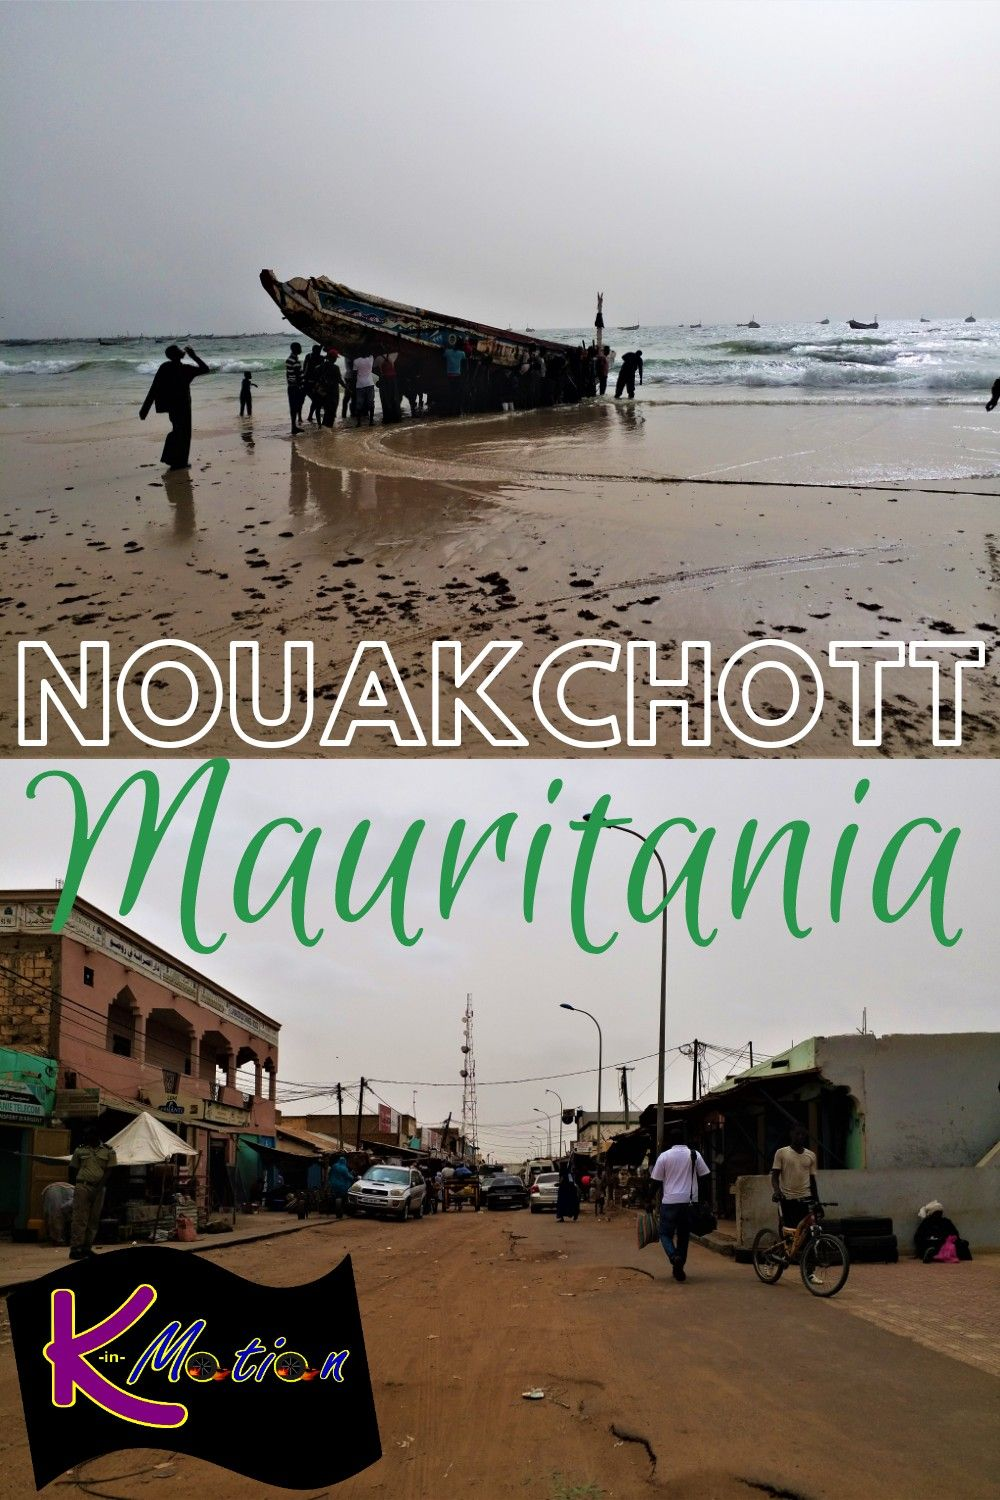 Join a journey through the south of an amazingly underrated Africa. From the Mauritanian capital Nouakchott and beyond. #Africa #mauritania #Nouakchott #budgettravel #budget #travel